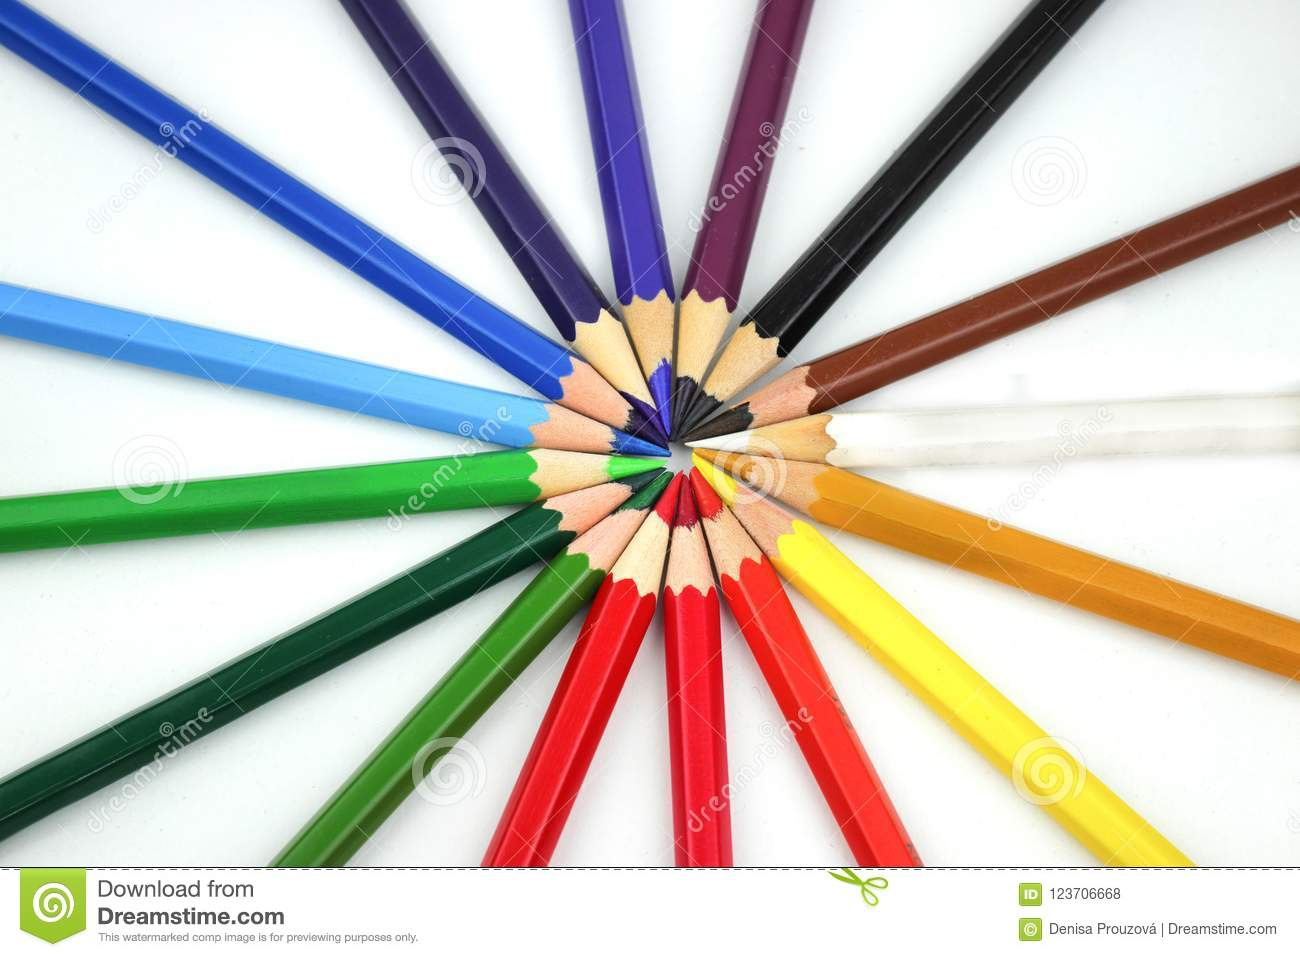 color wheel from a color spectrum of stationery crayons on white